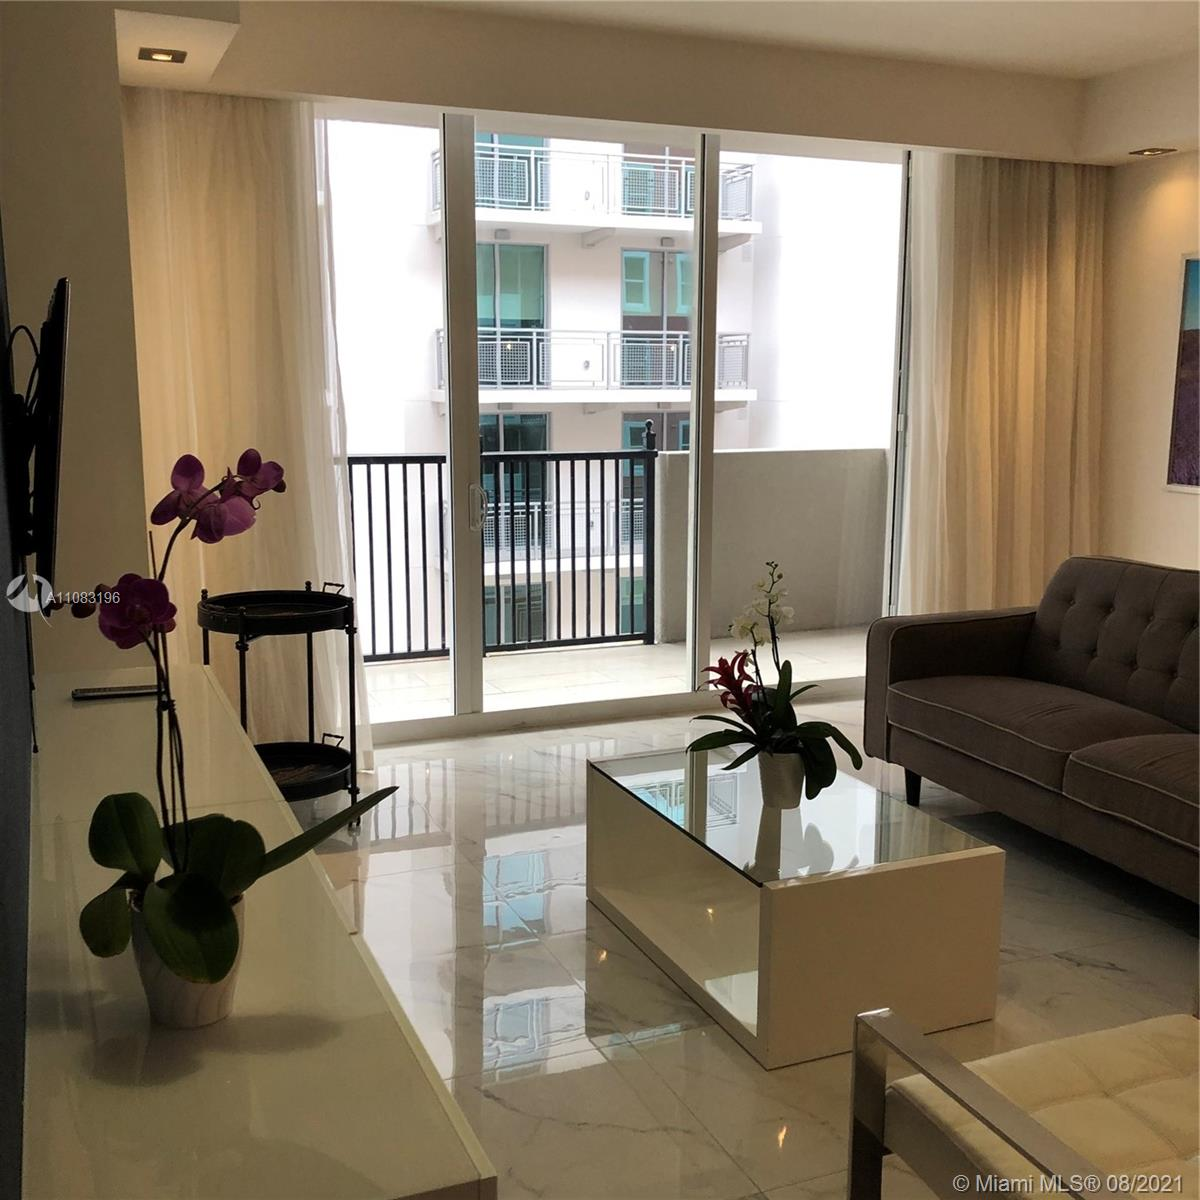 Building is located near UM University, walking distance to shops of Merrick Park, dinning, movie theater and entertainment. Showing 24 hs. notice